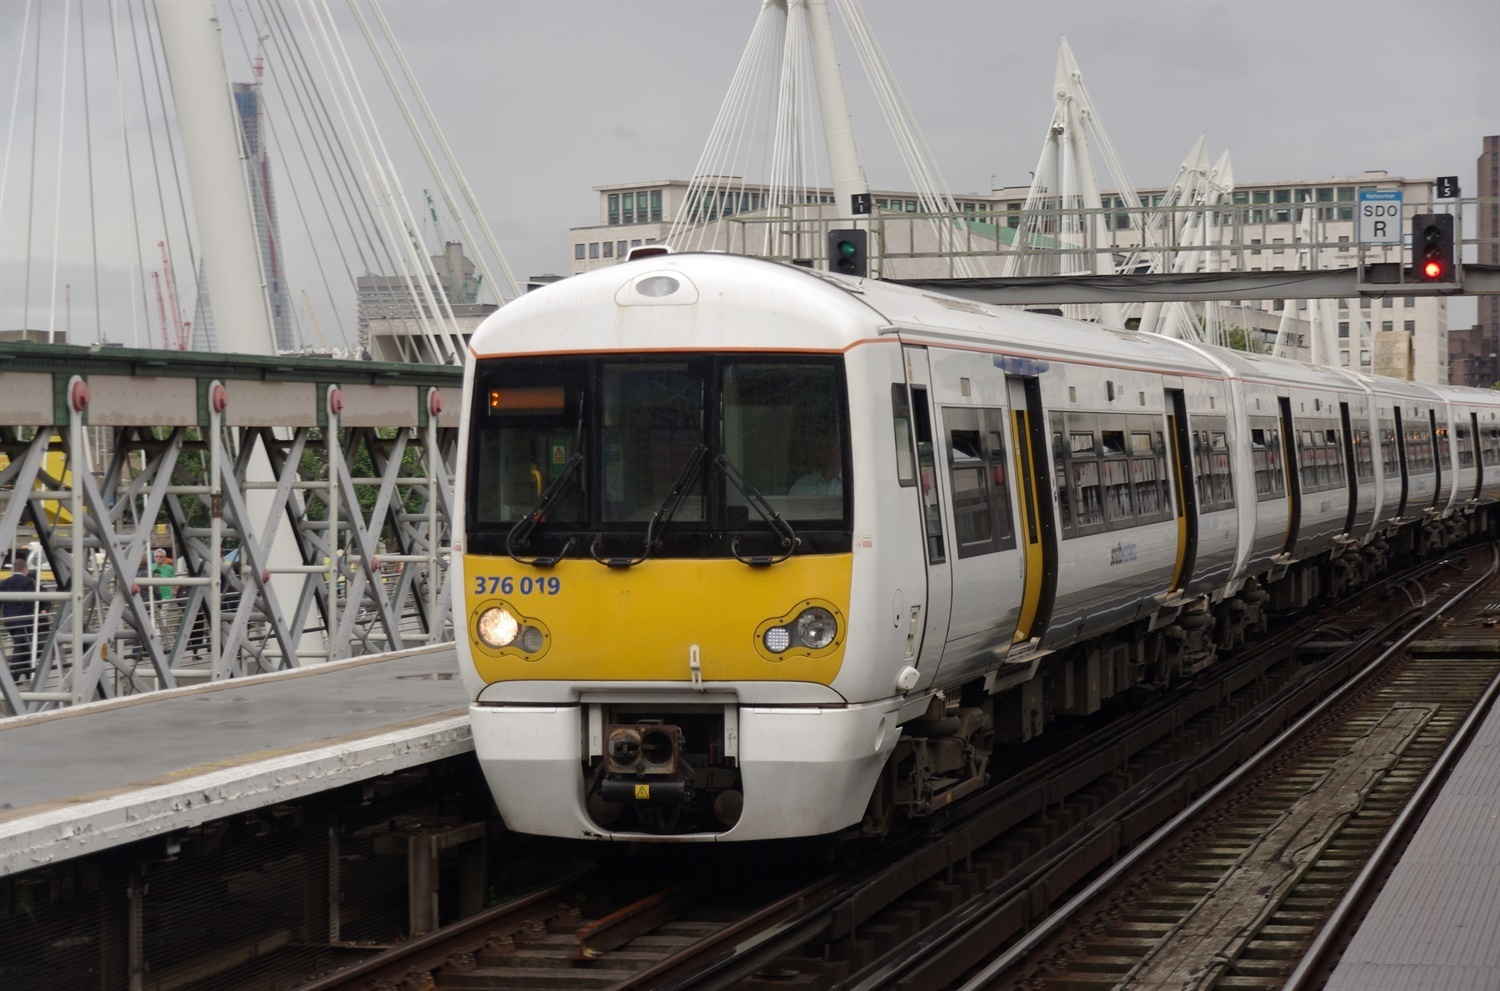 TfL picks London routes ripe for devolution ahead of DfT approval